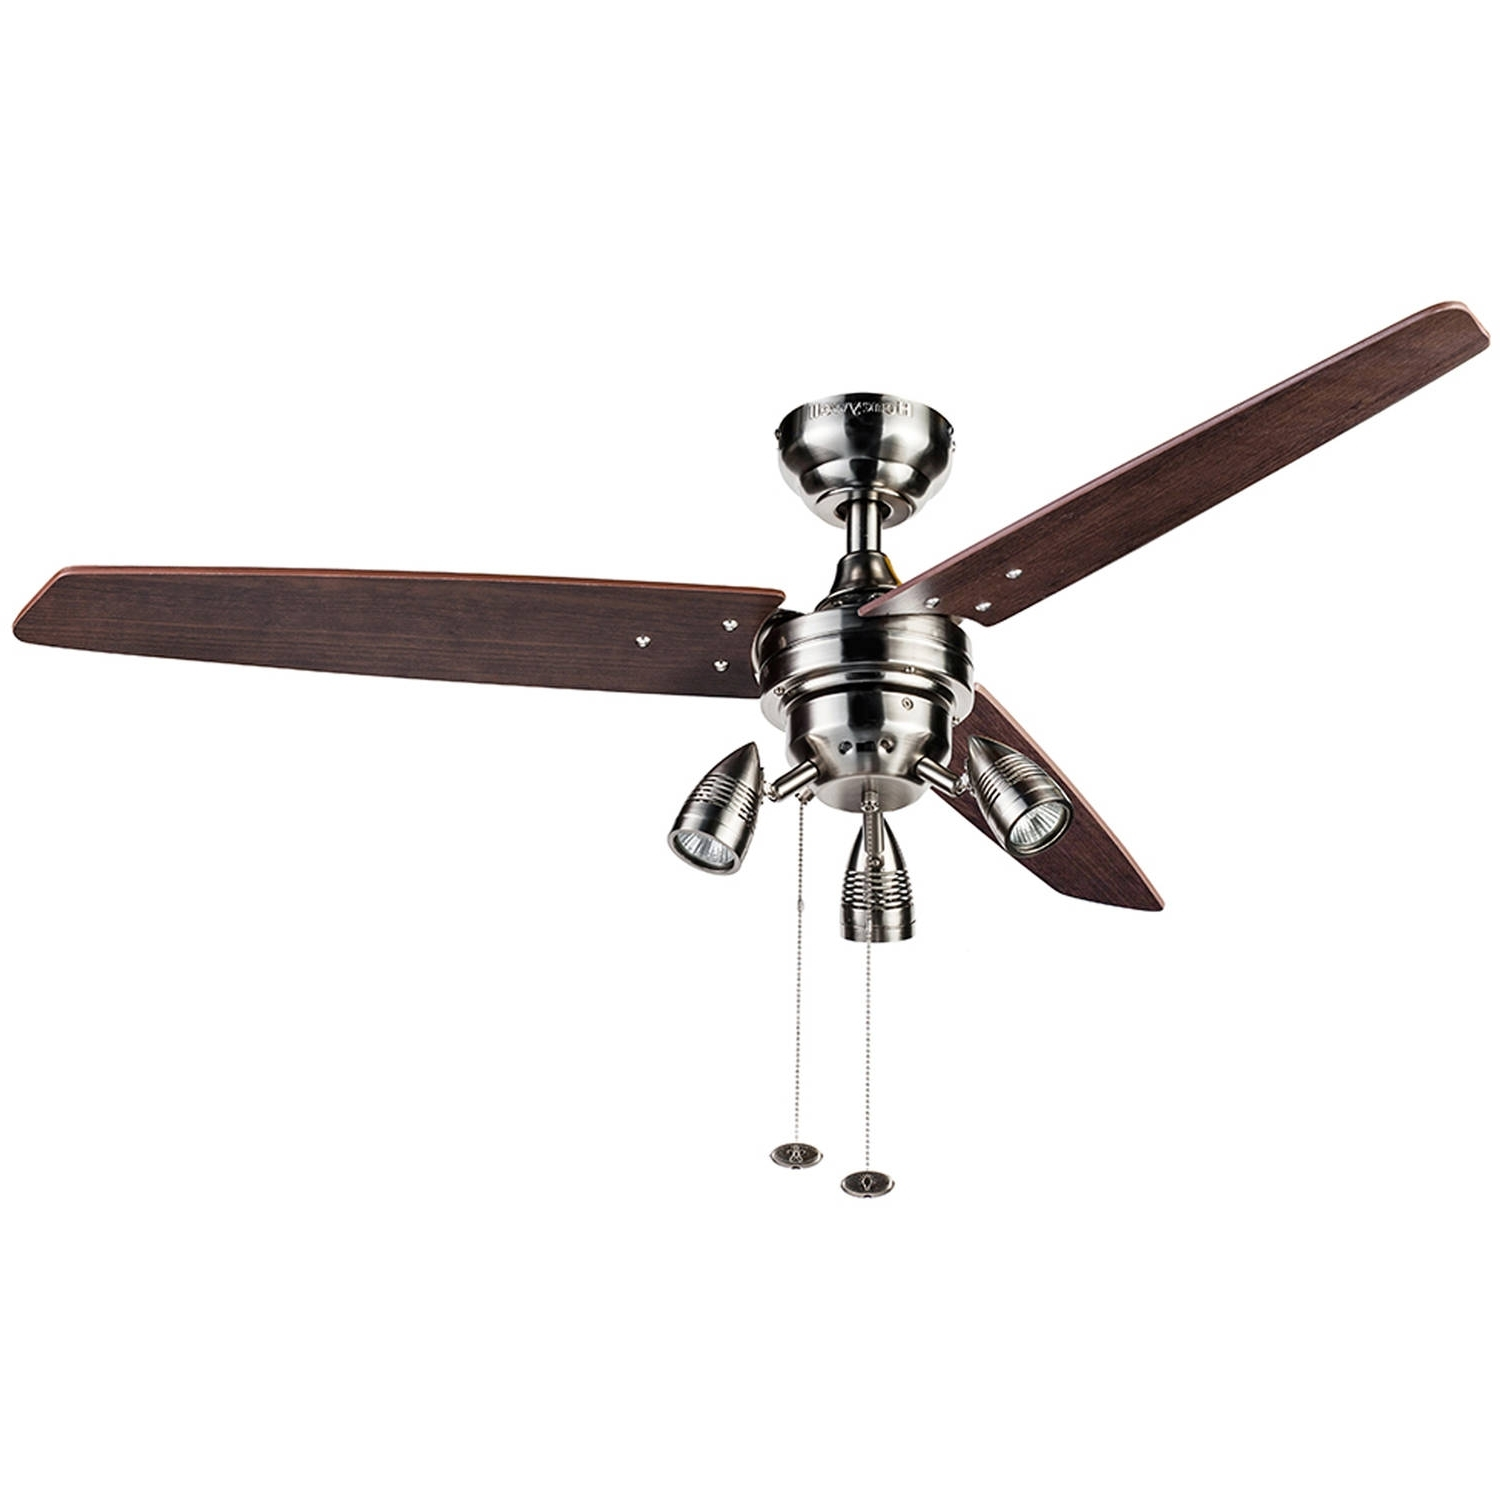 "Well Liked Outdoor Ceiling Fans With Bright Lights Intended For 42"" Mainstays Hugger Indoor Ceiling Fan With Light, White – Walmart (View 19 of 20)"